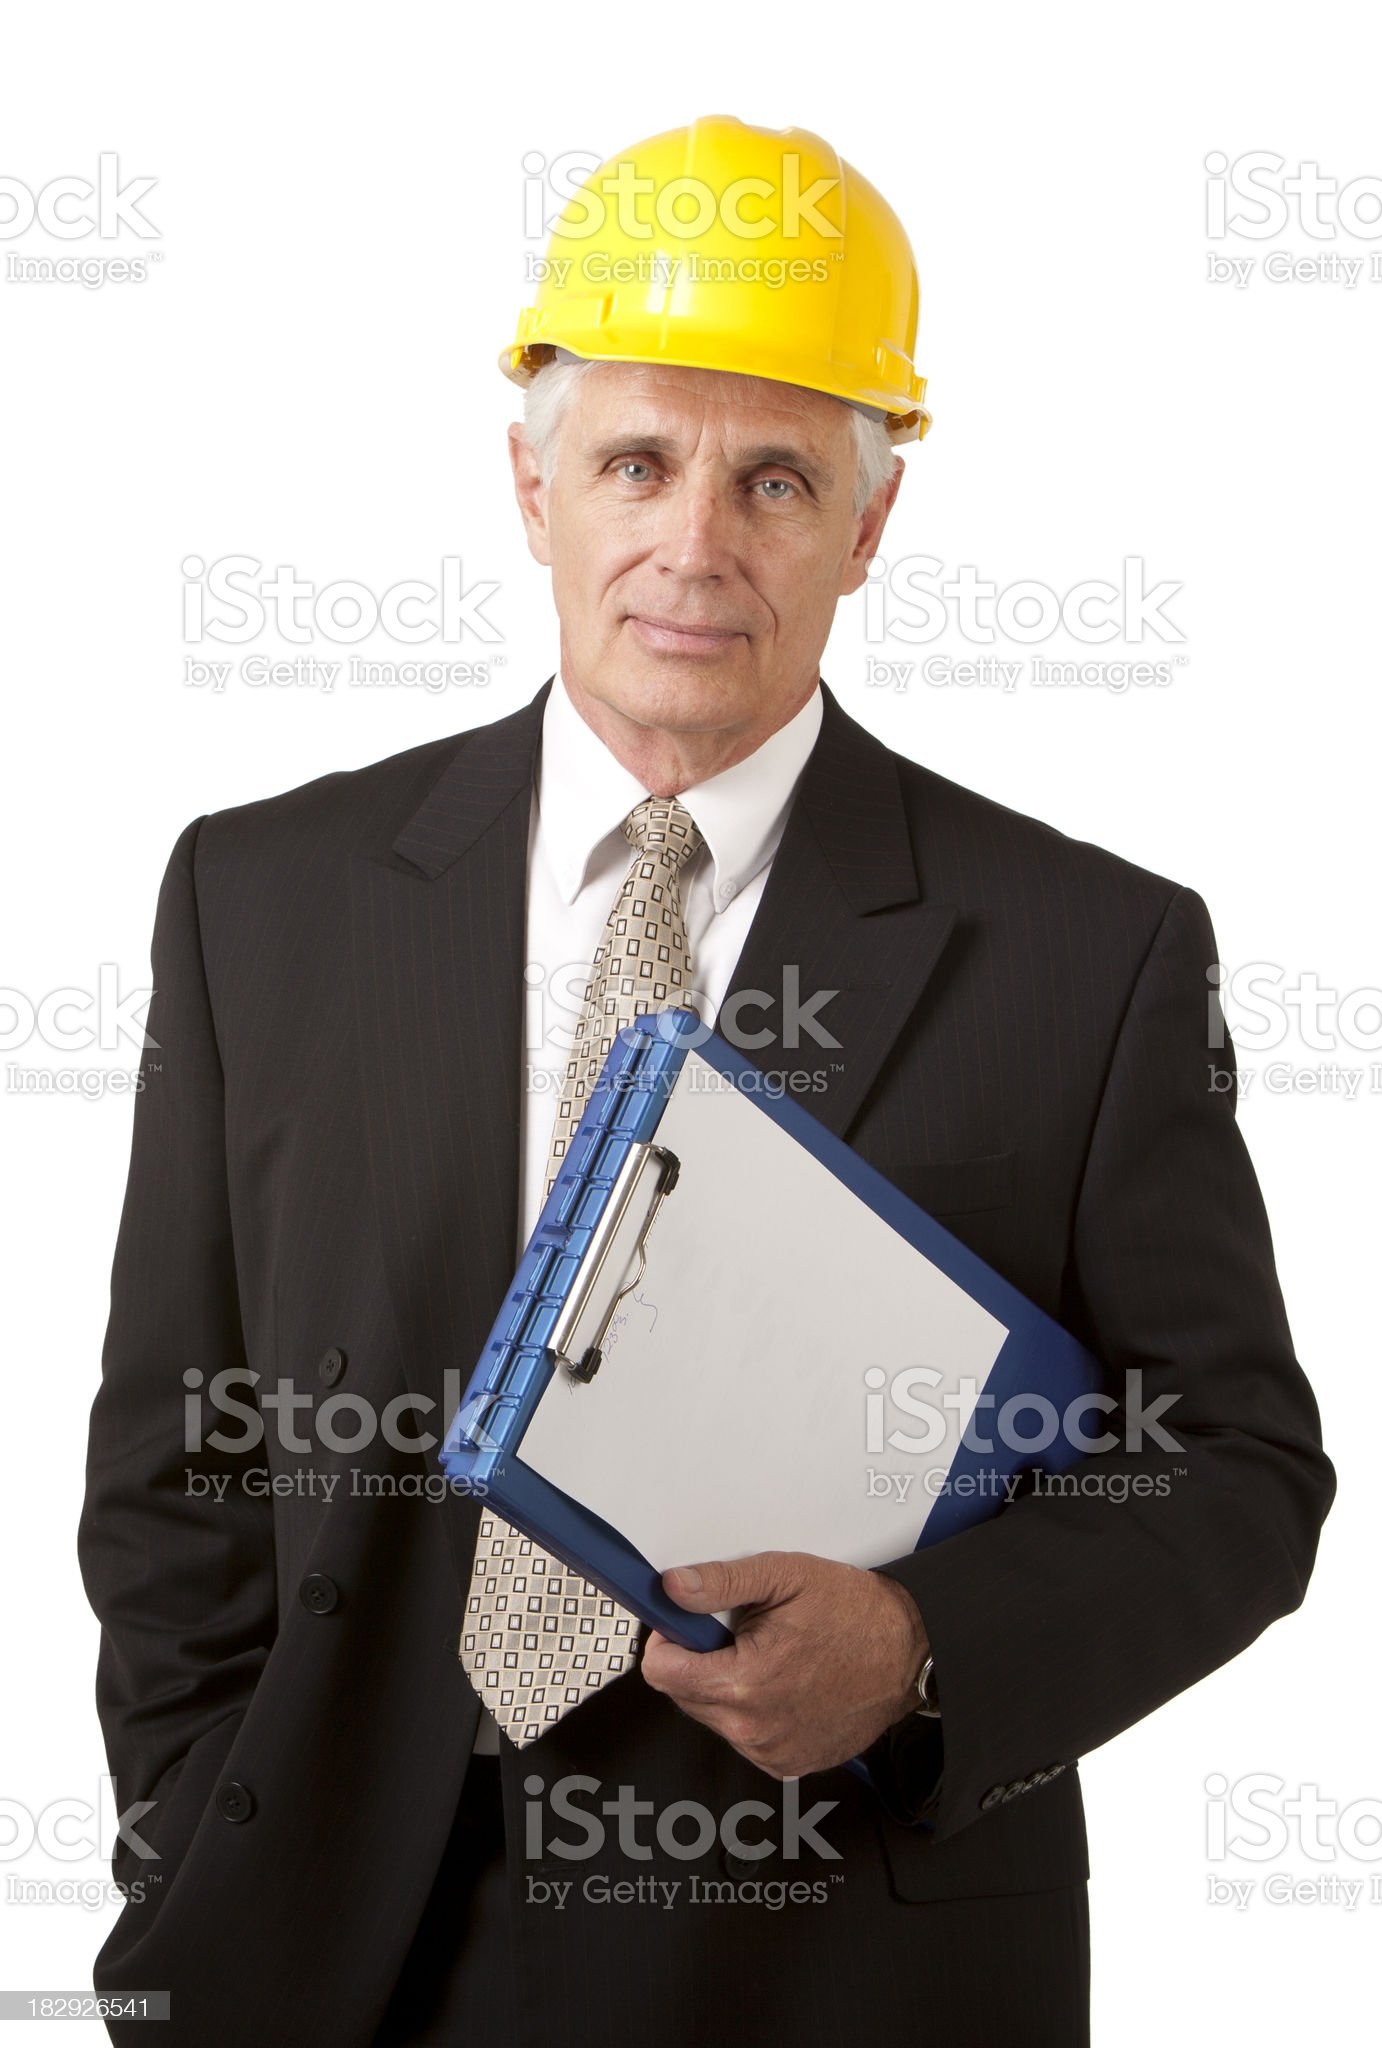 Businessman and Clipboard royalty-free stock photo